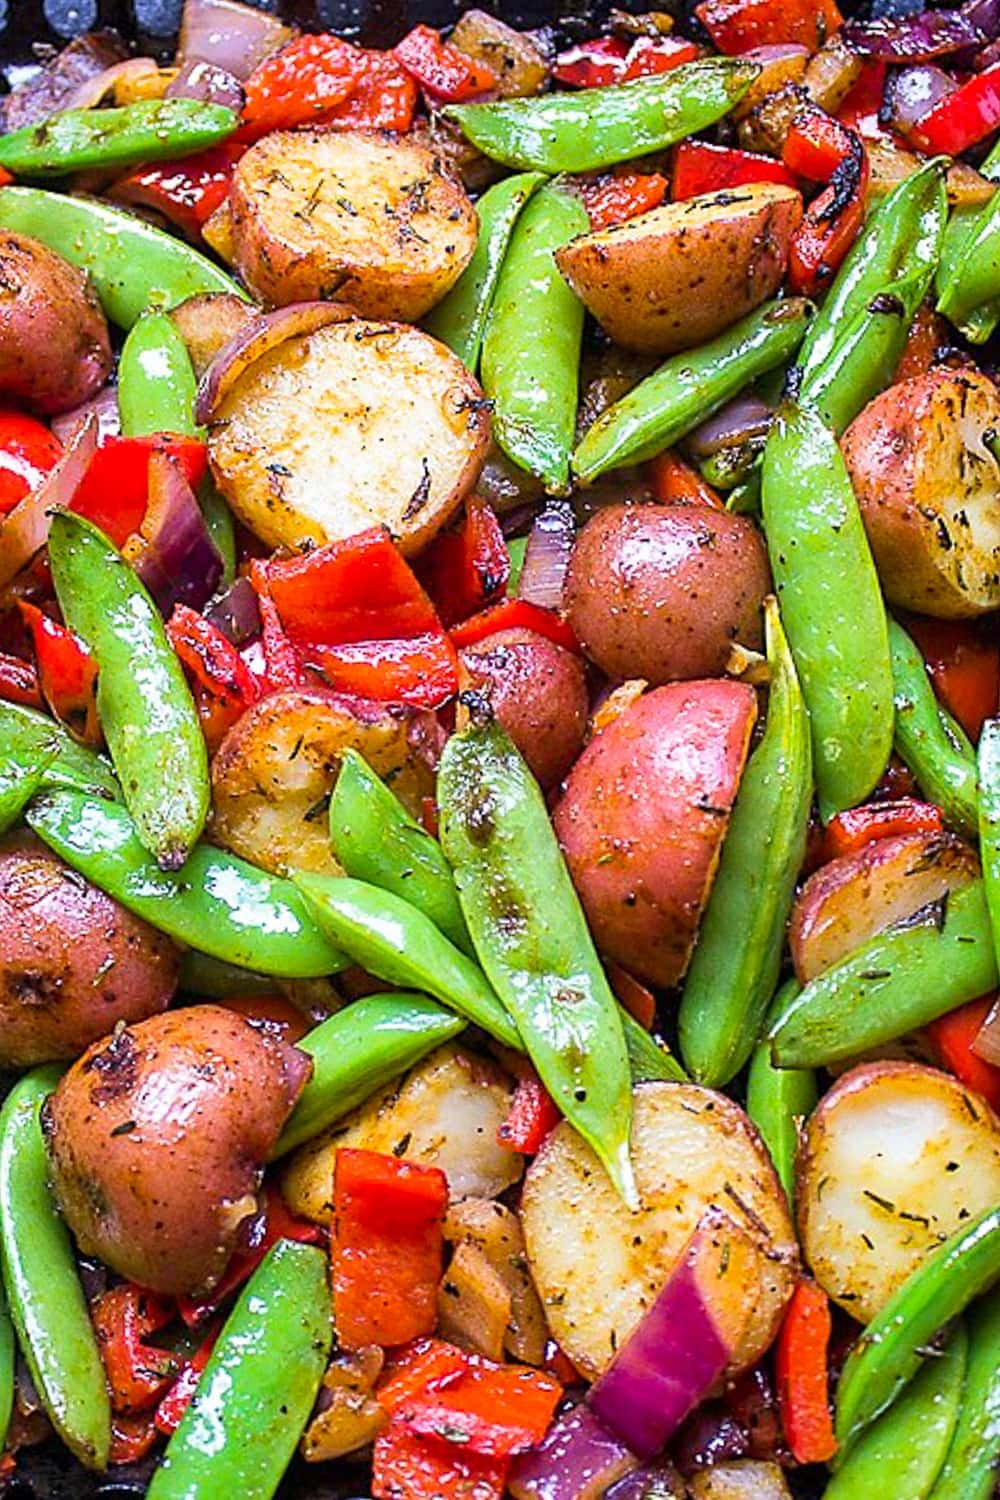 grilled veggies and potatoes in grill basket p1